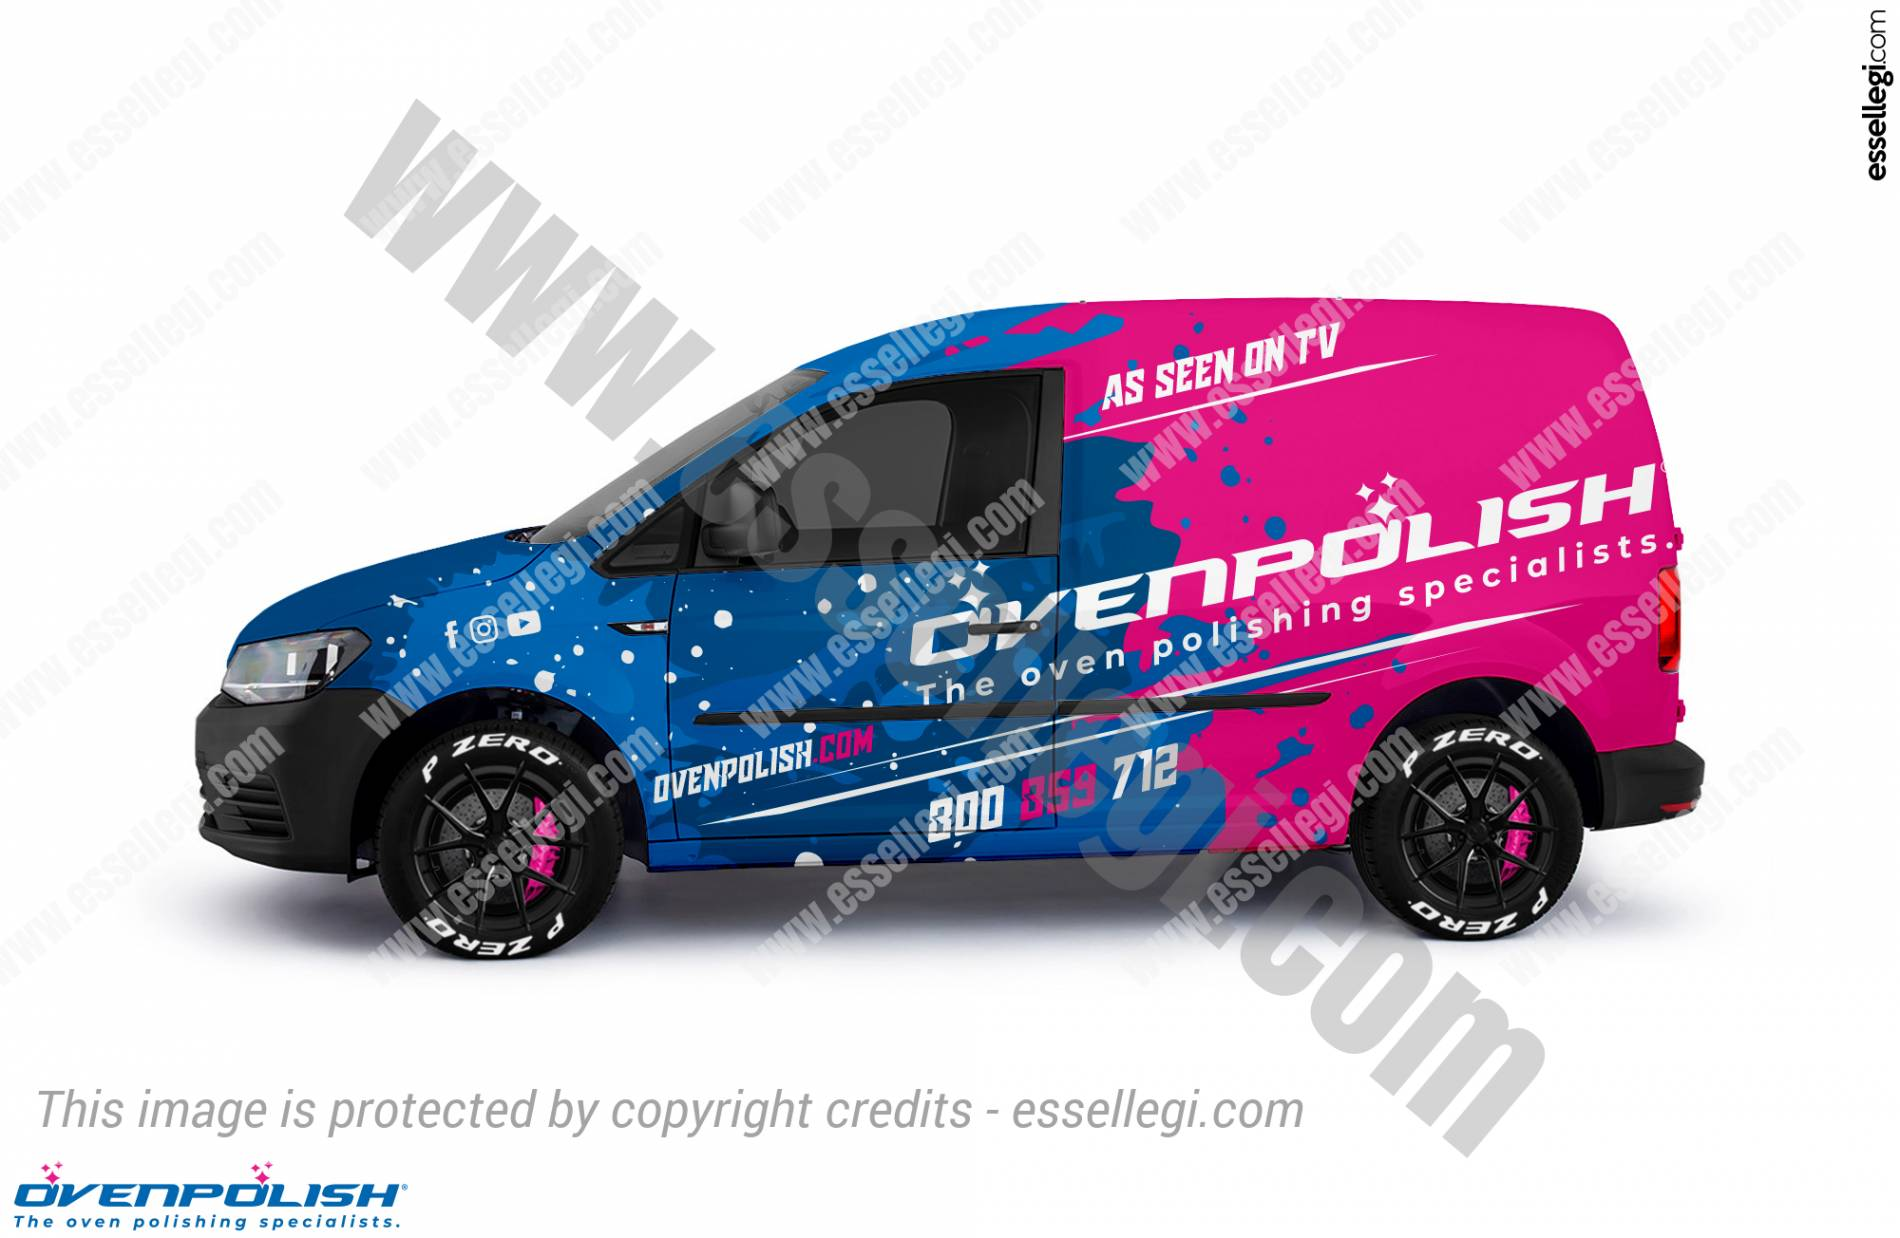 VW Caddy Wrap Design. VW Caddy | Van Wrap Design by Essellegi. Van Signs, Van Signage, Van Wrapping, Van Signwriting, Van Wrap Designer, Signs for Van, Van Logo, Van Graphic by Essellegi.